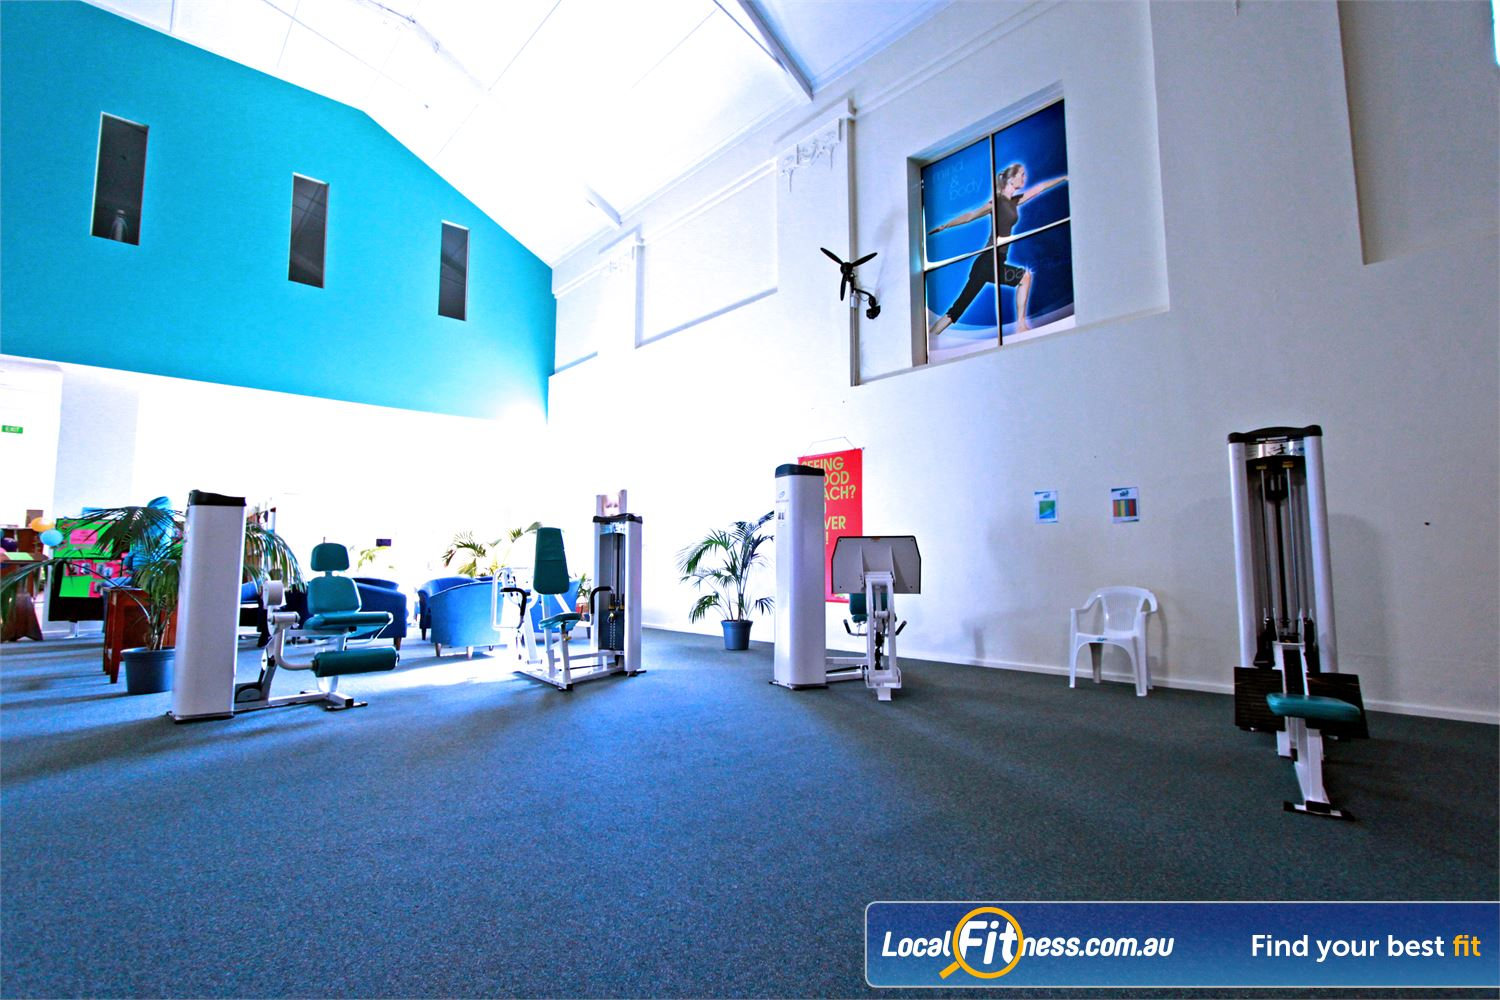 Fernwood Fitness Woonona Our Woonona women's gym provides a spacious 2 level training facility with a heritage feel.